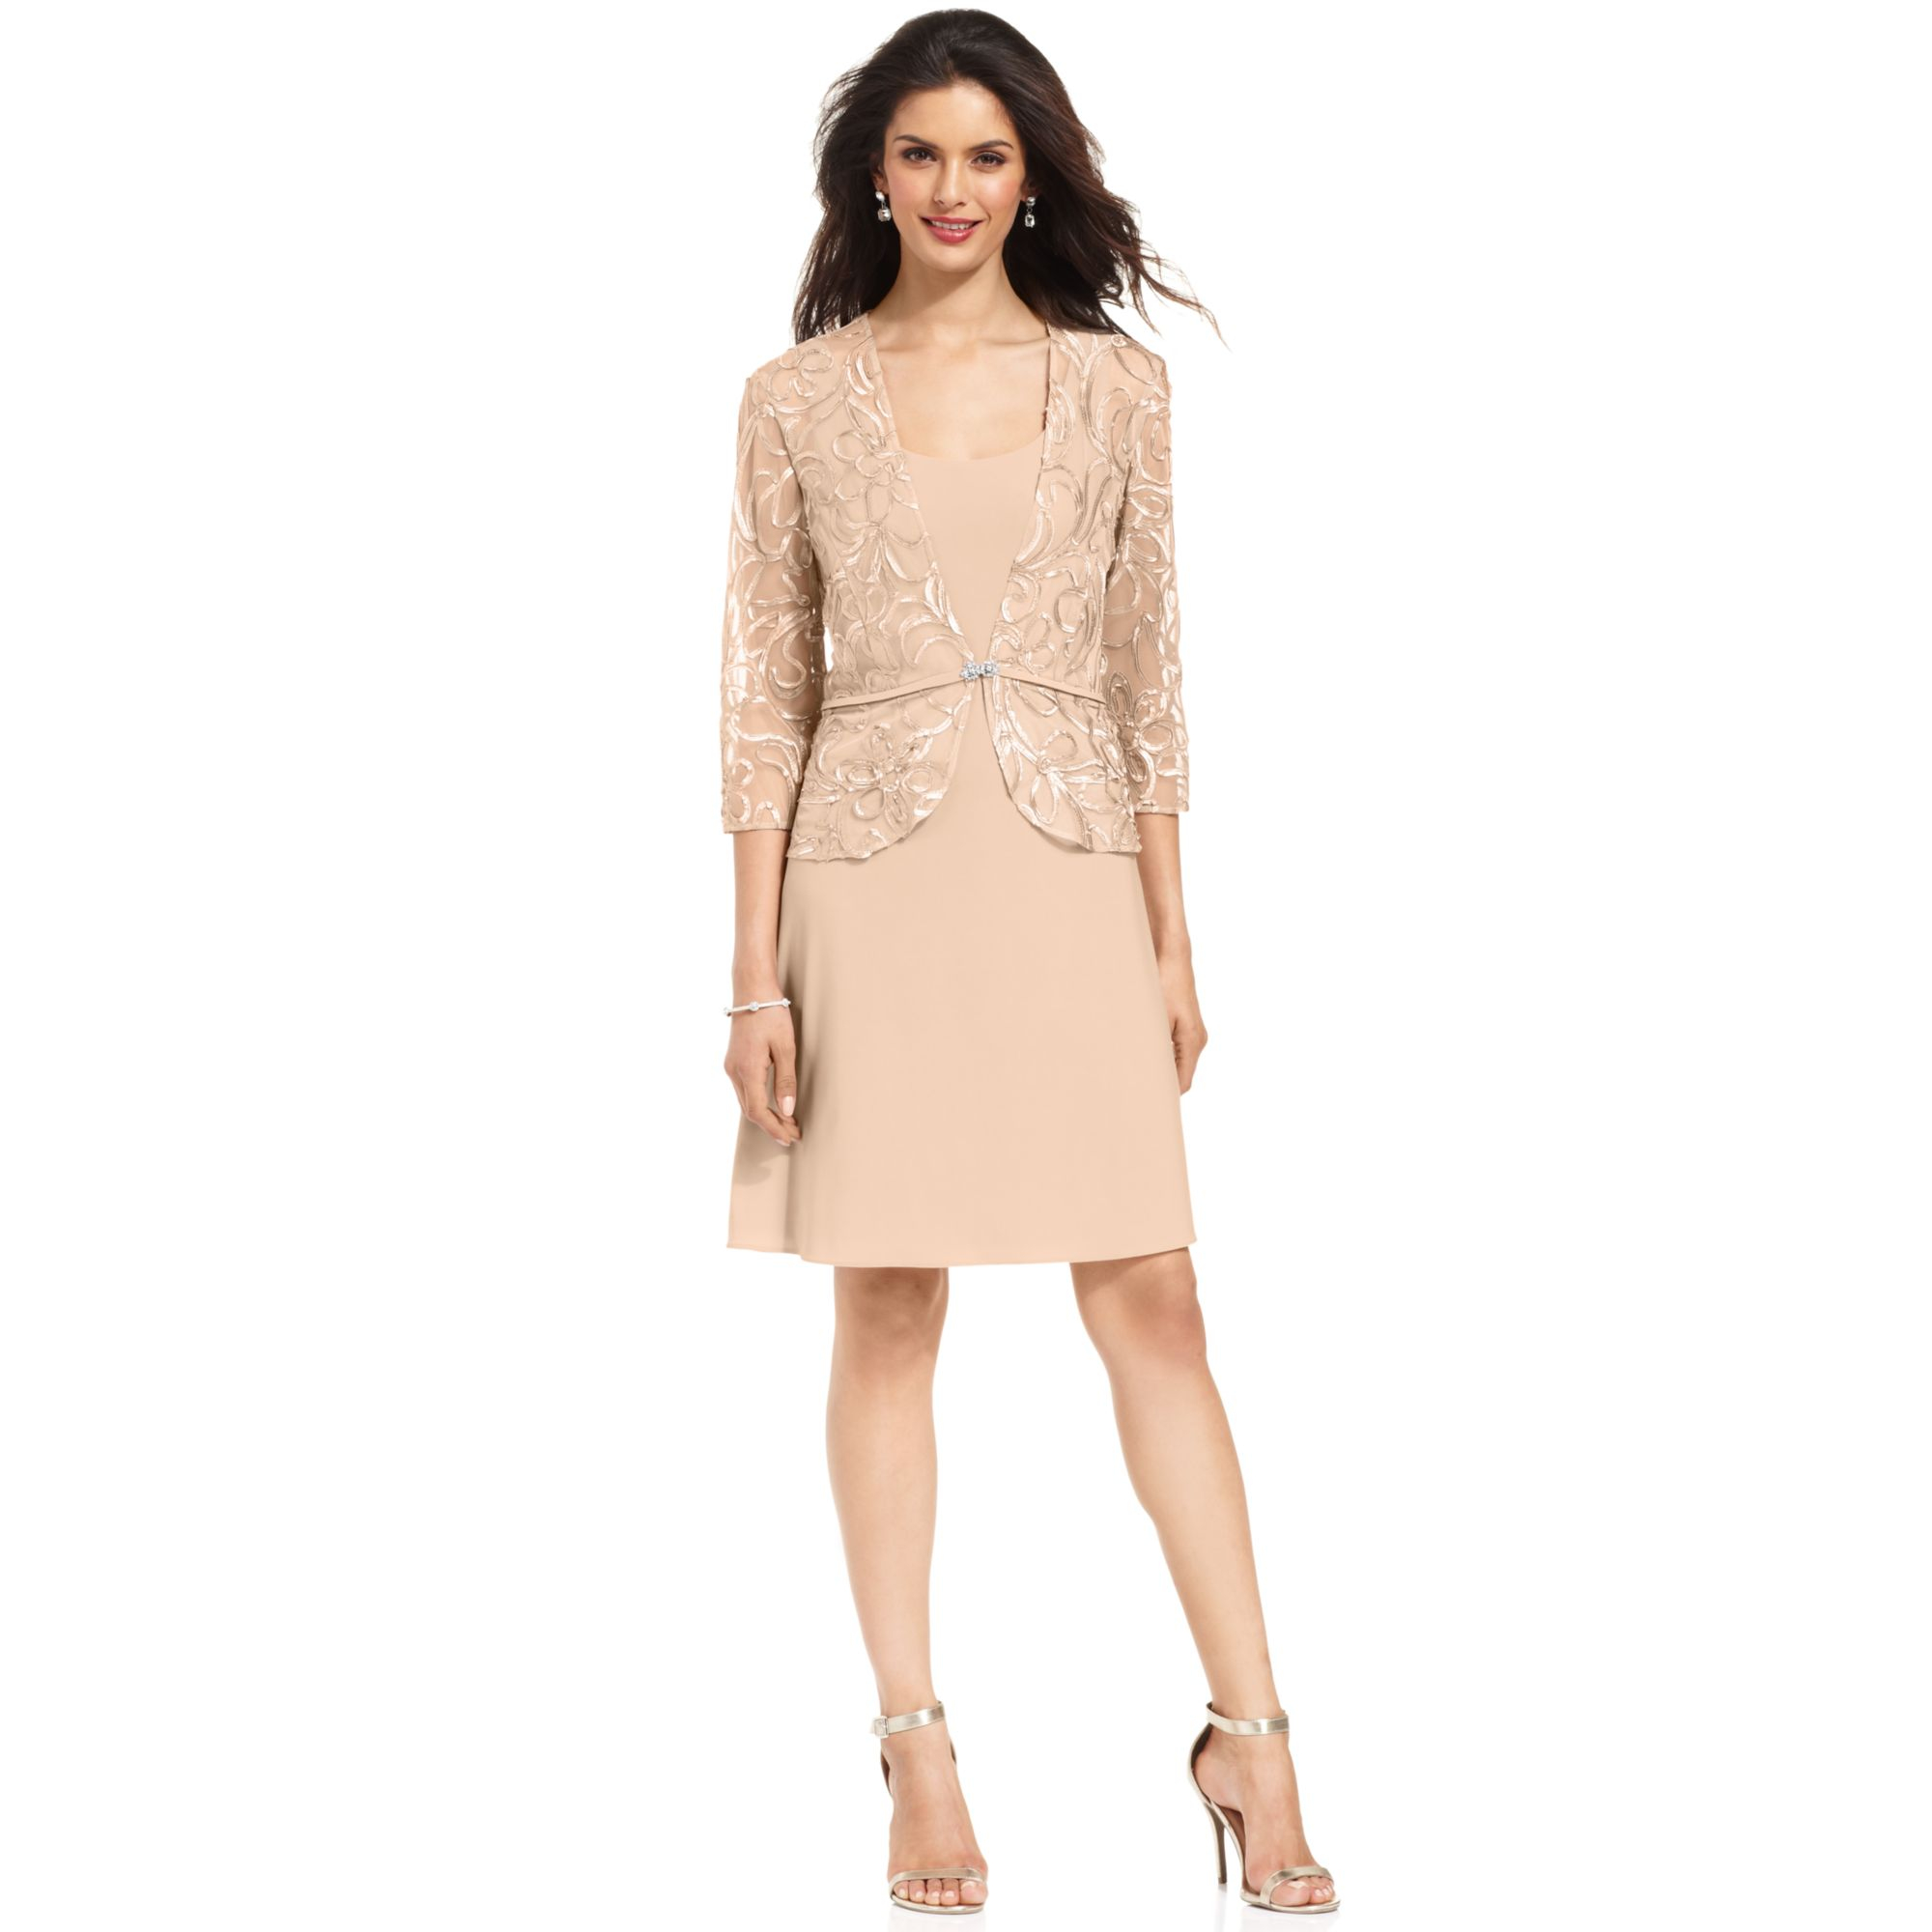 patra petite sleeveless embroidered dress and jacket in beige champale lyst. Black Bedroom Furniture Sets. Home Design Ideas